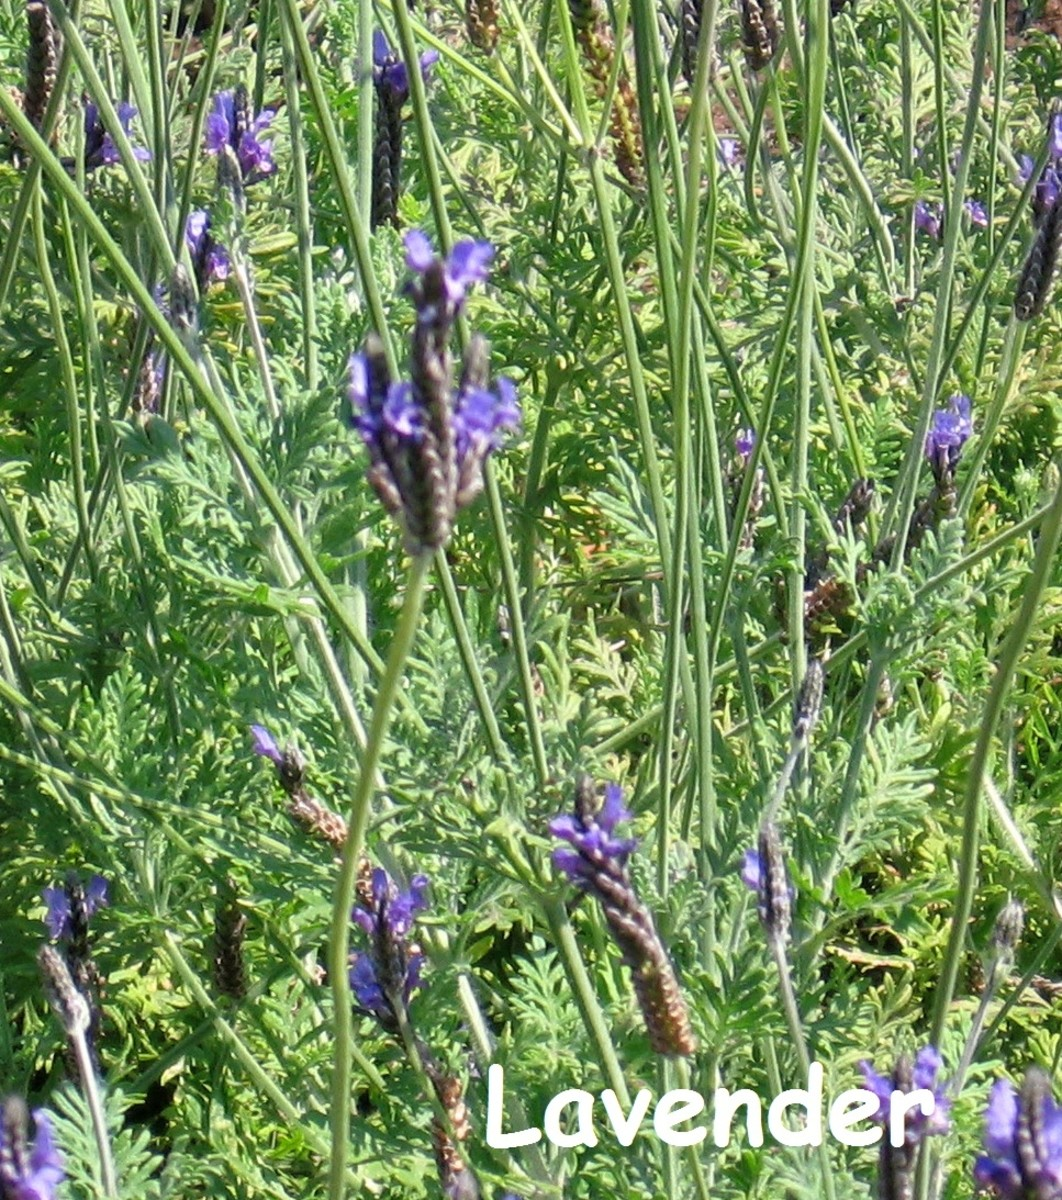 Lavender, easy to grow and so versatile - it can be used in a lot of different natural herbal cures.